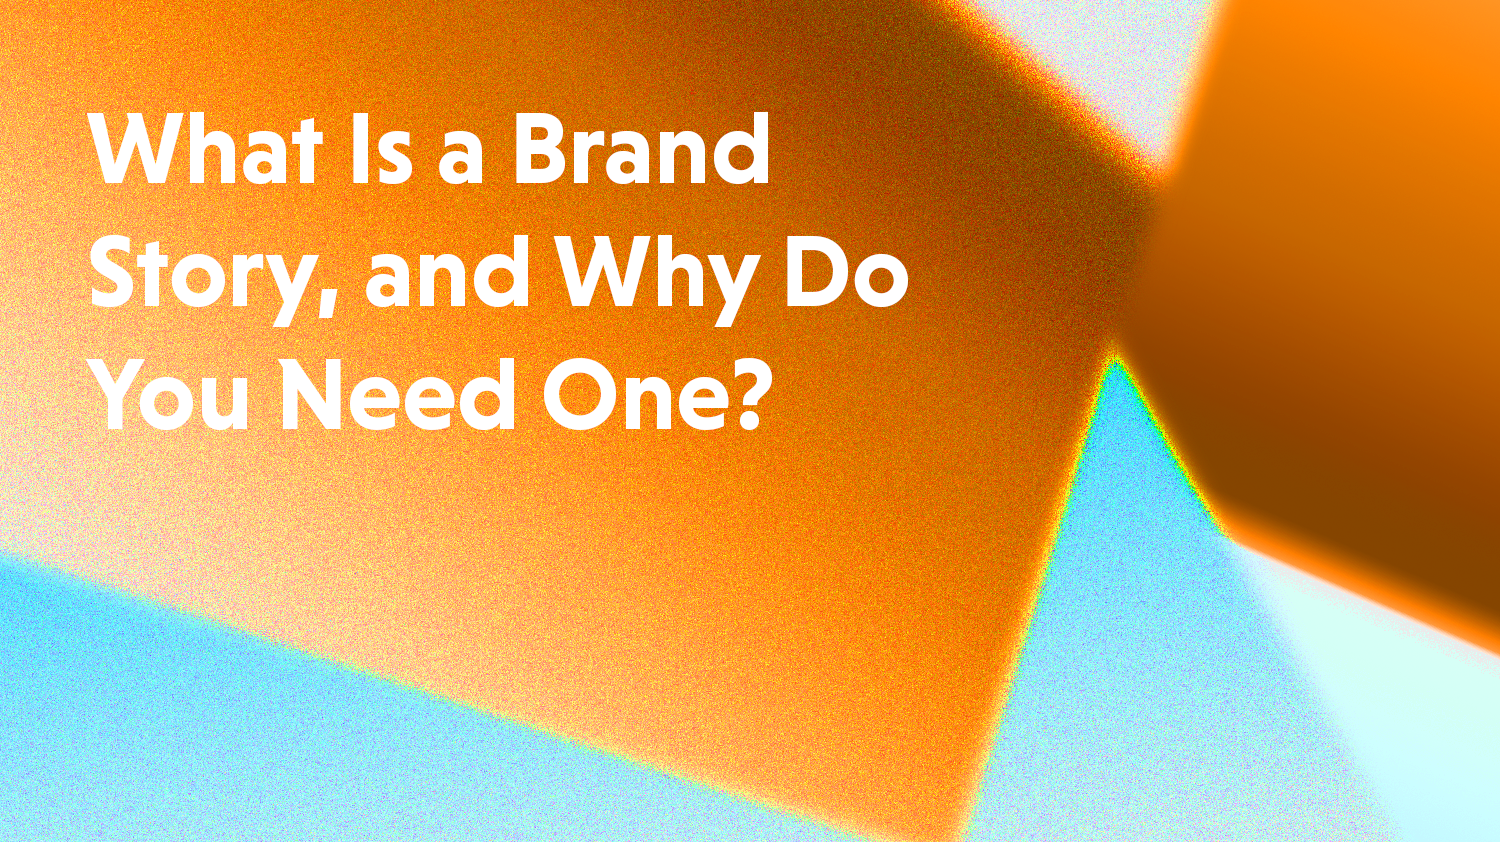 What is a brand story, and why do you need one?